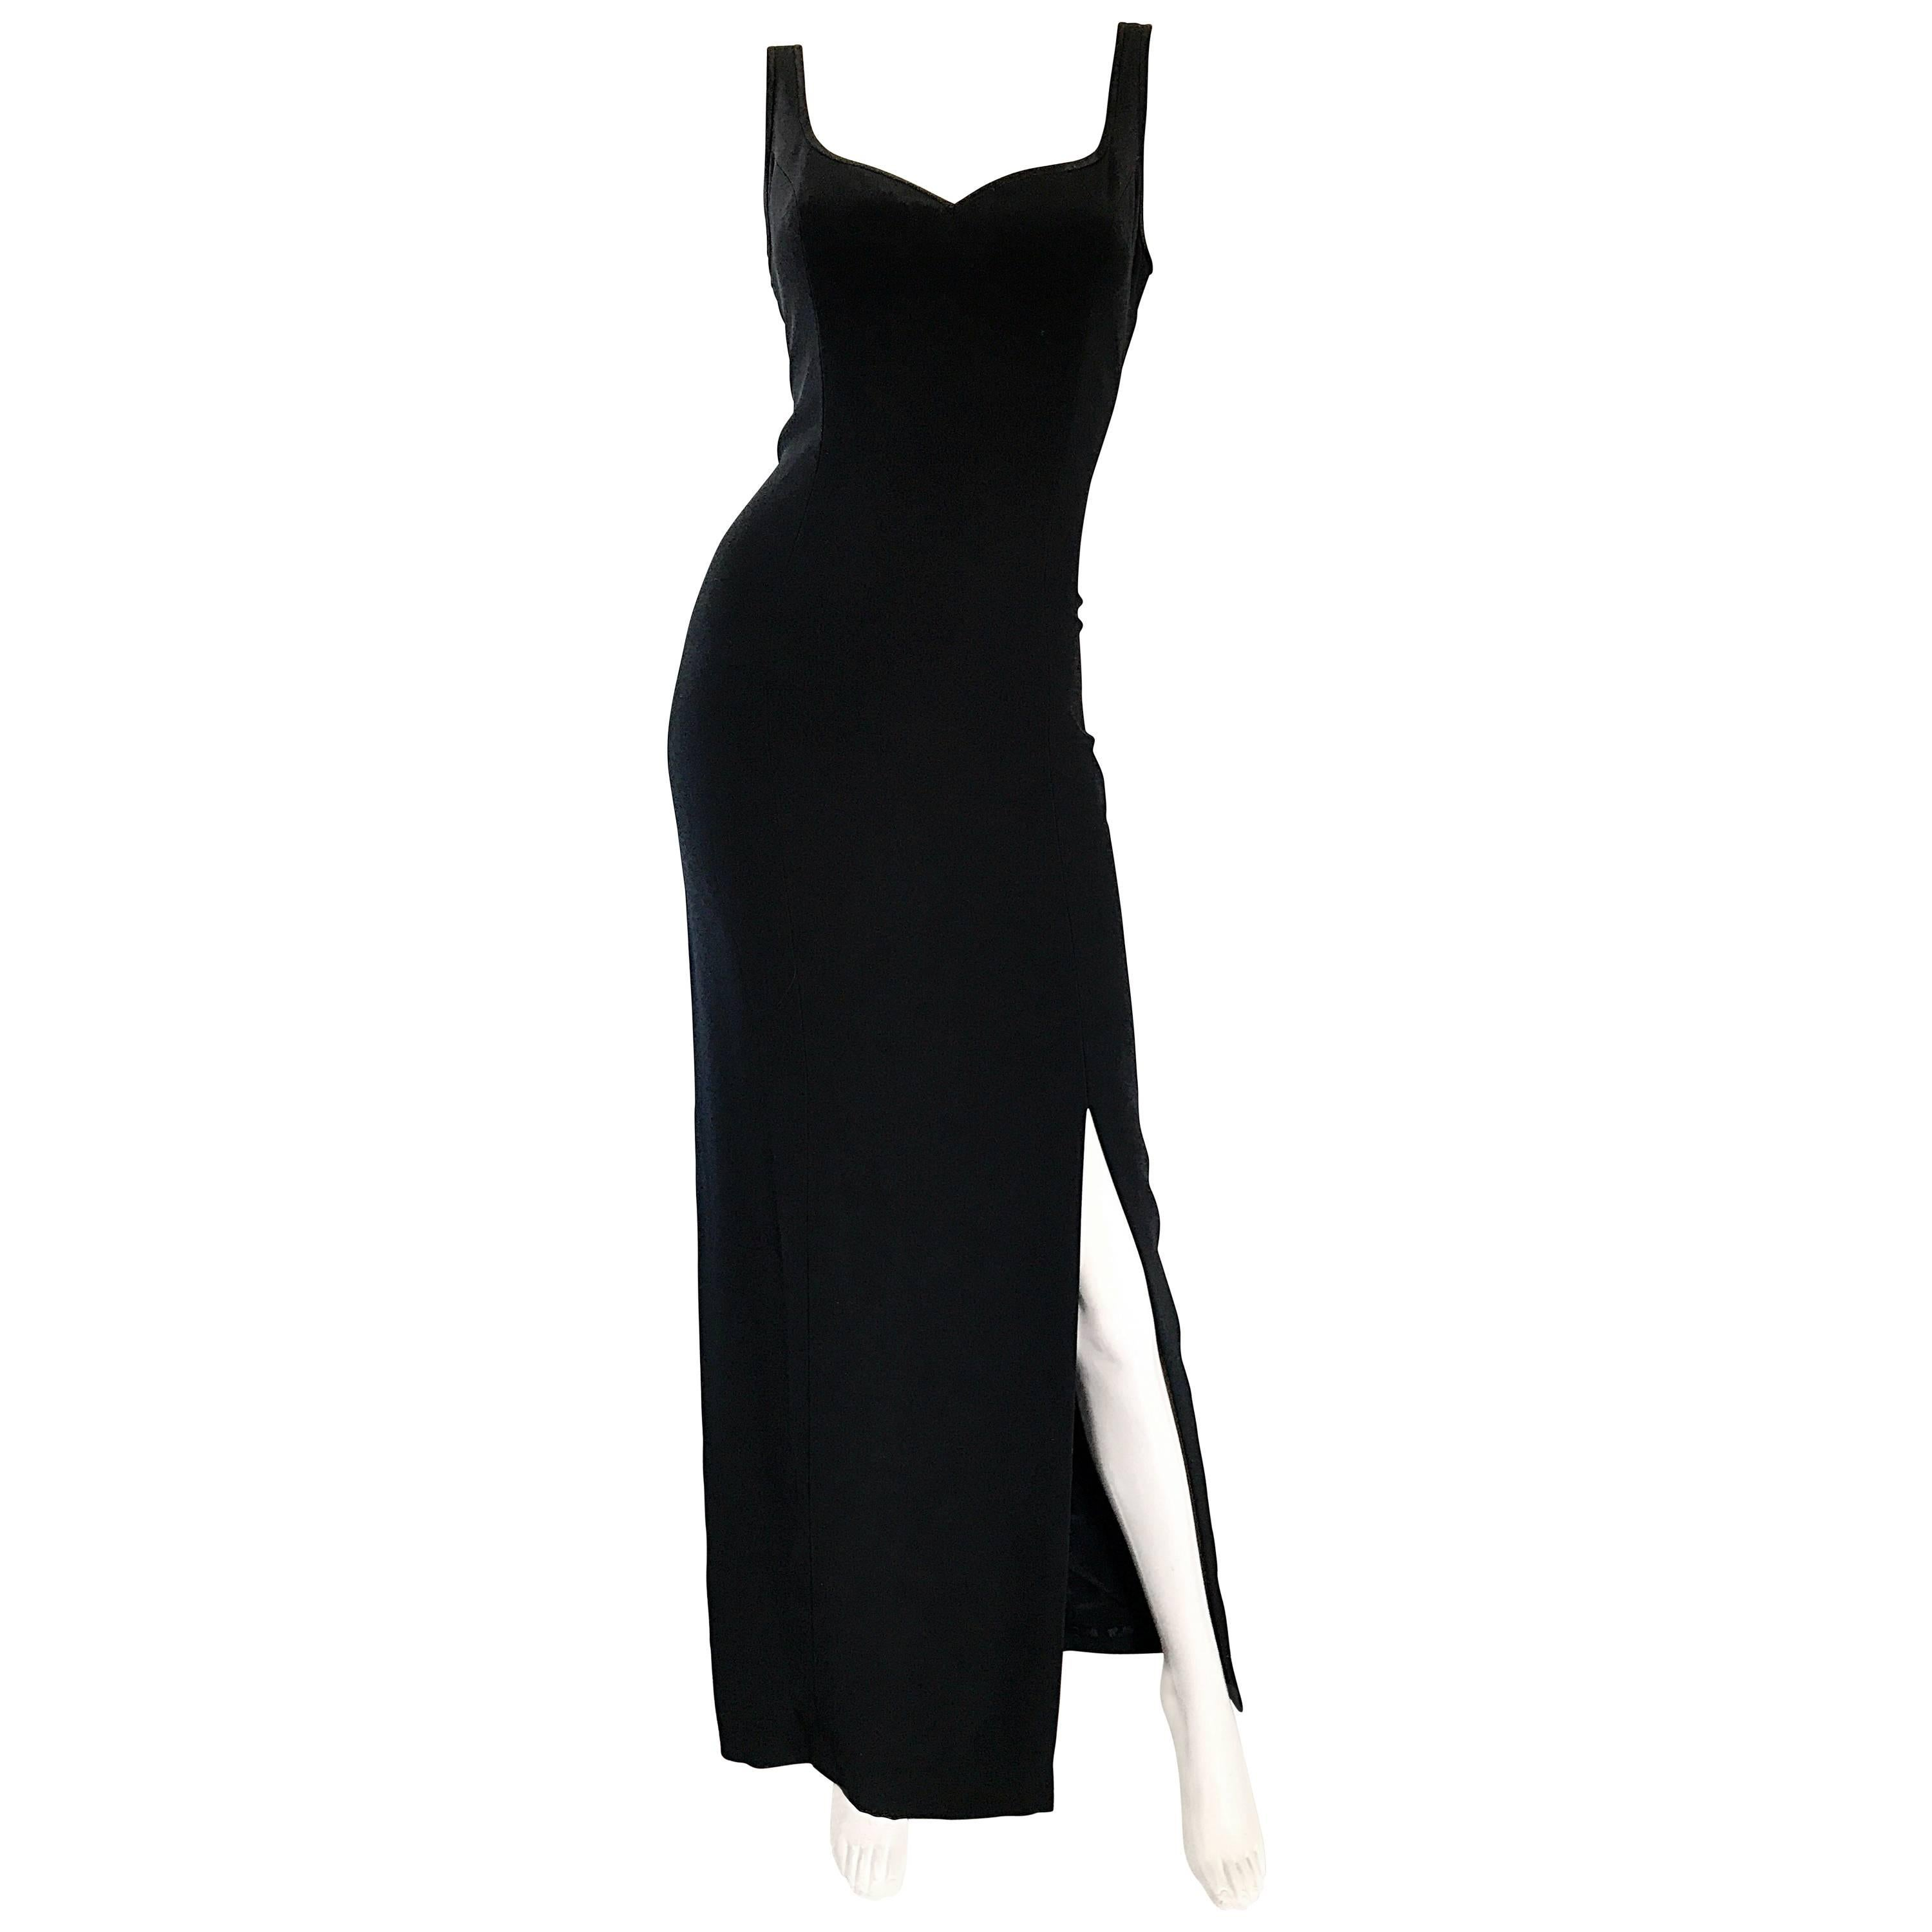 1990s Bob Mackie Size 10 Black Crepe Sexy 90s Vintage High Slit Evening Gown